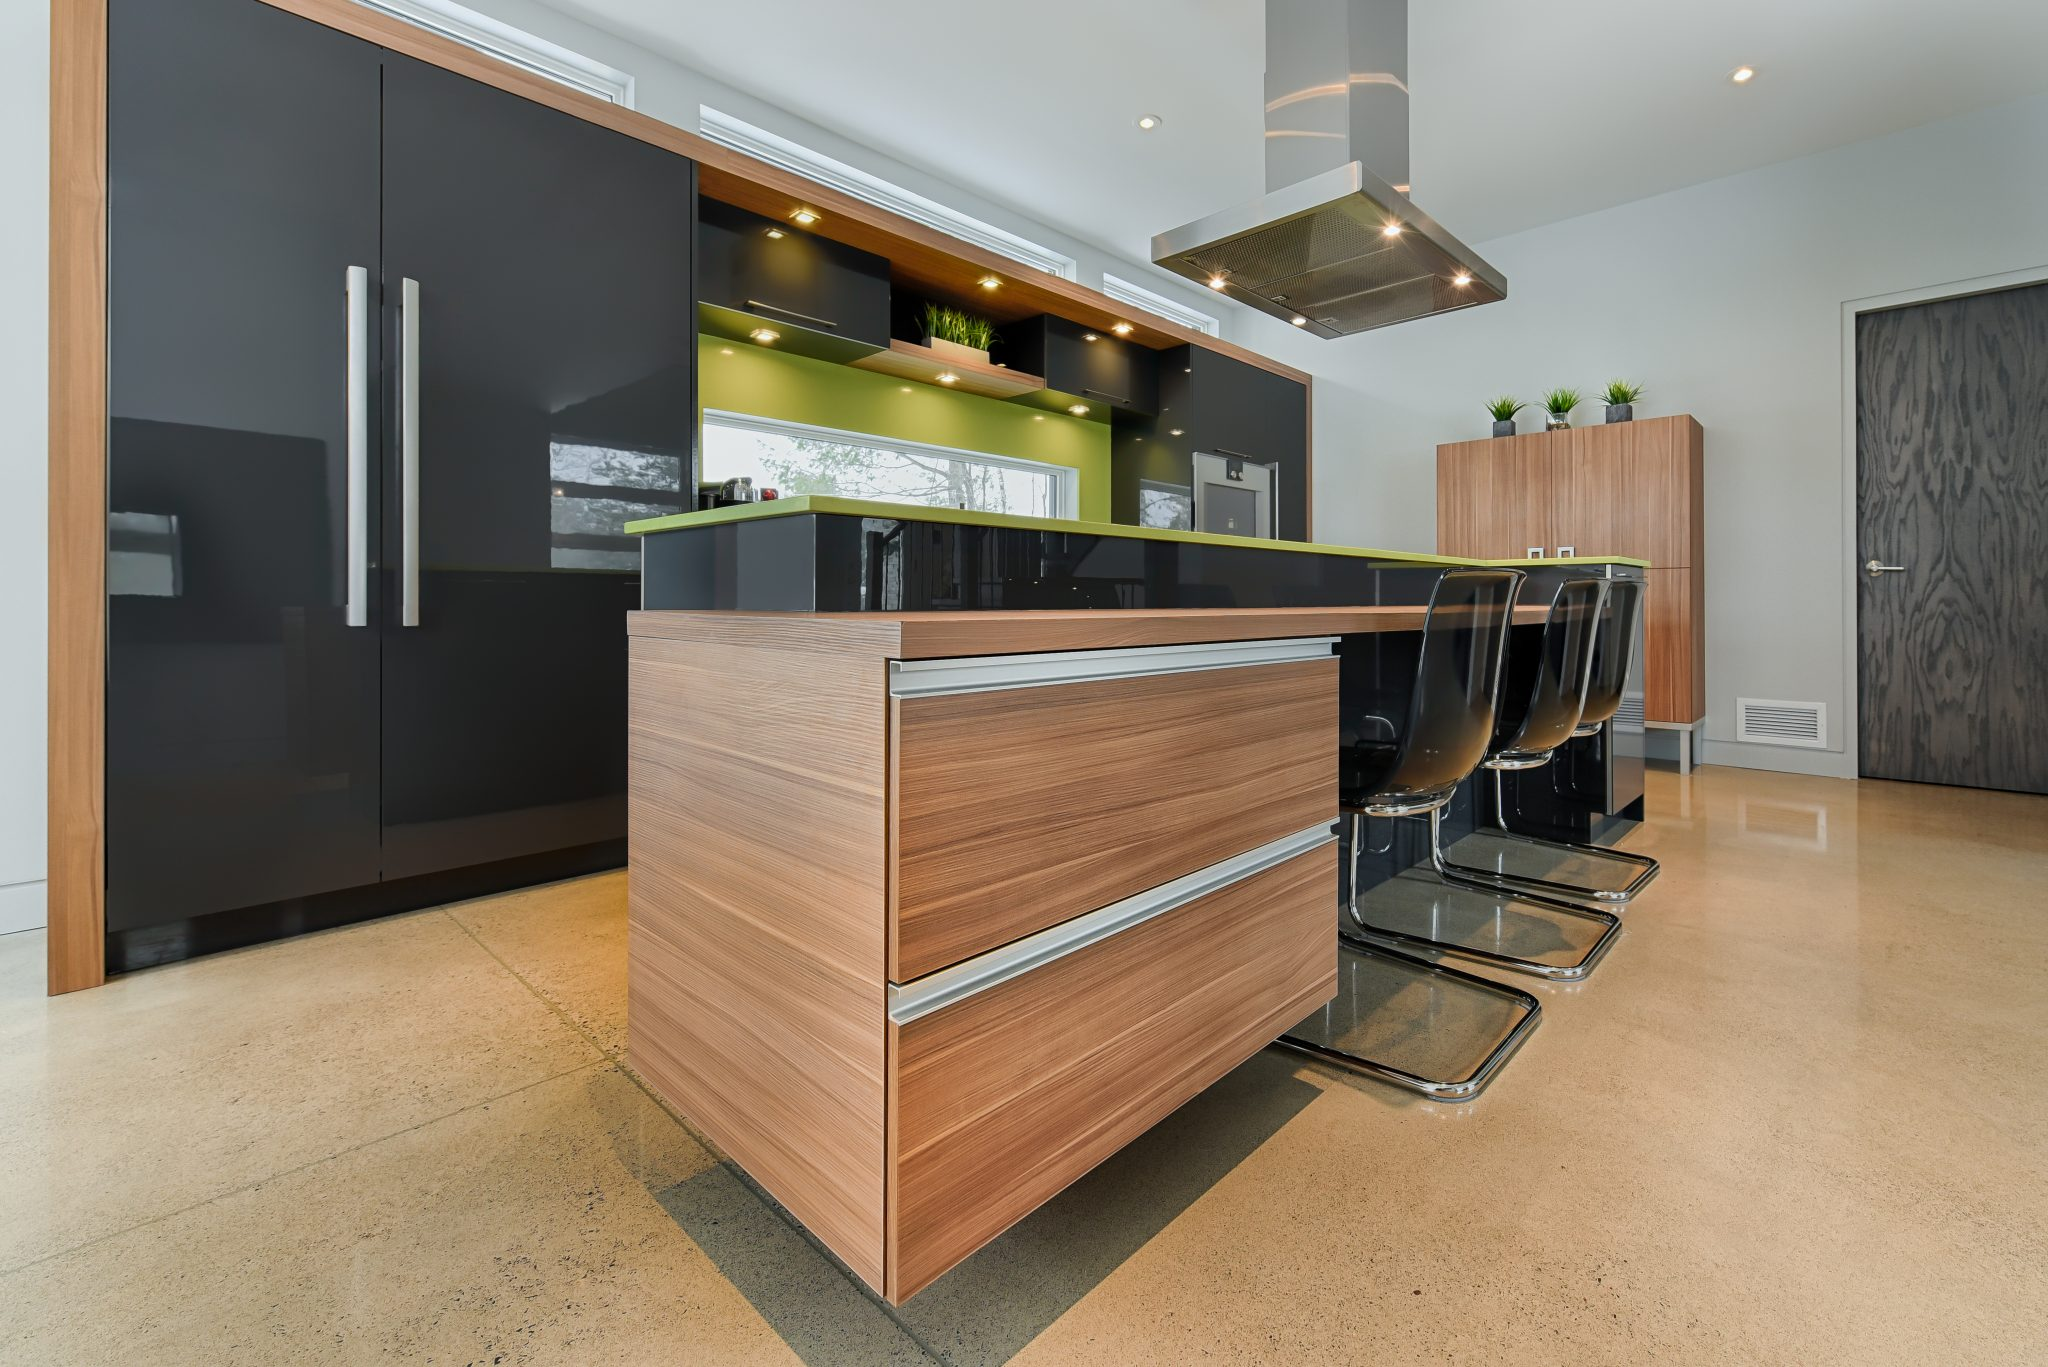 Lacquer or Paint for Kitchen Cabinets? | Bespoke furniture ...